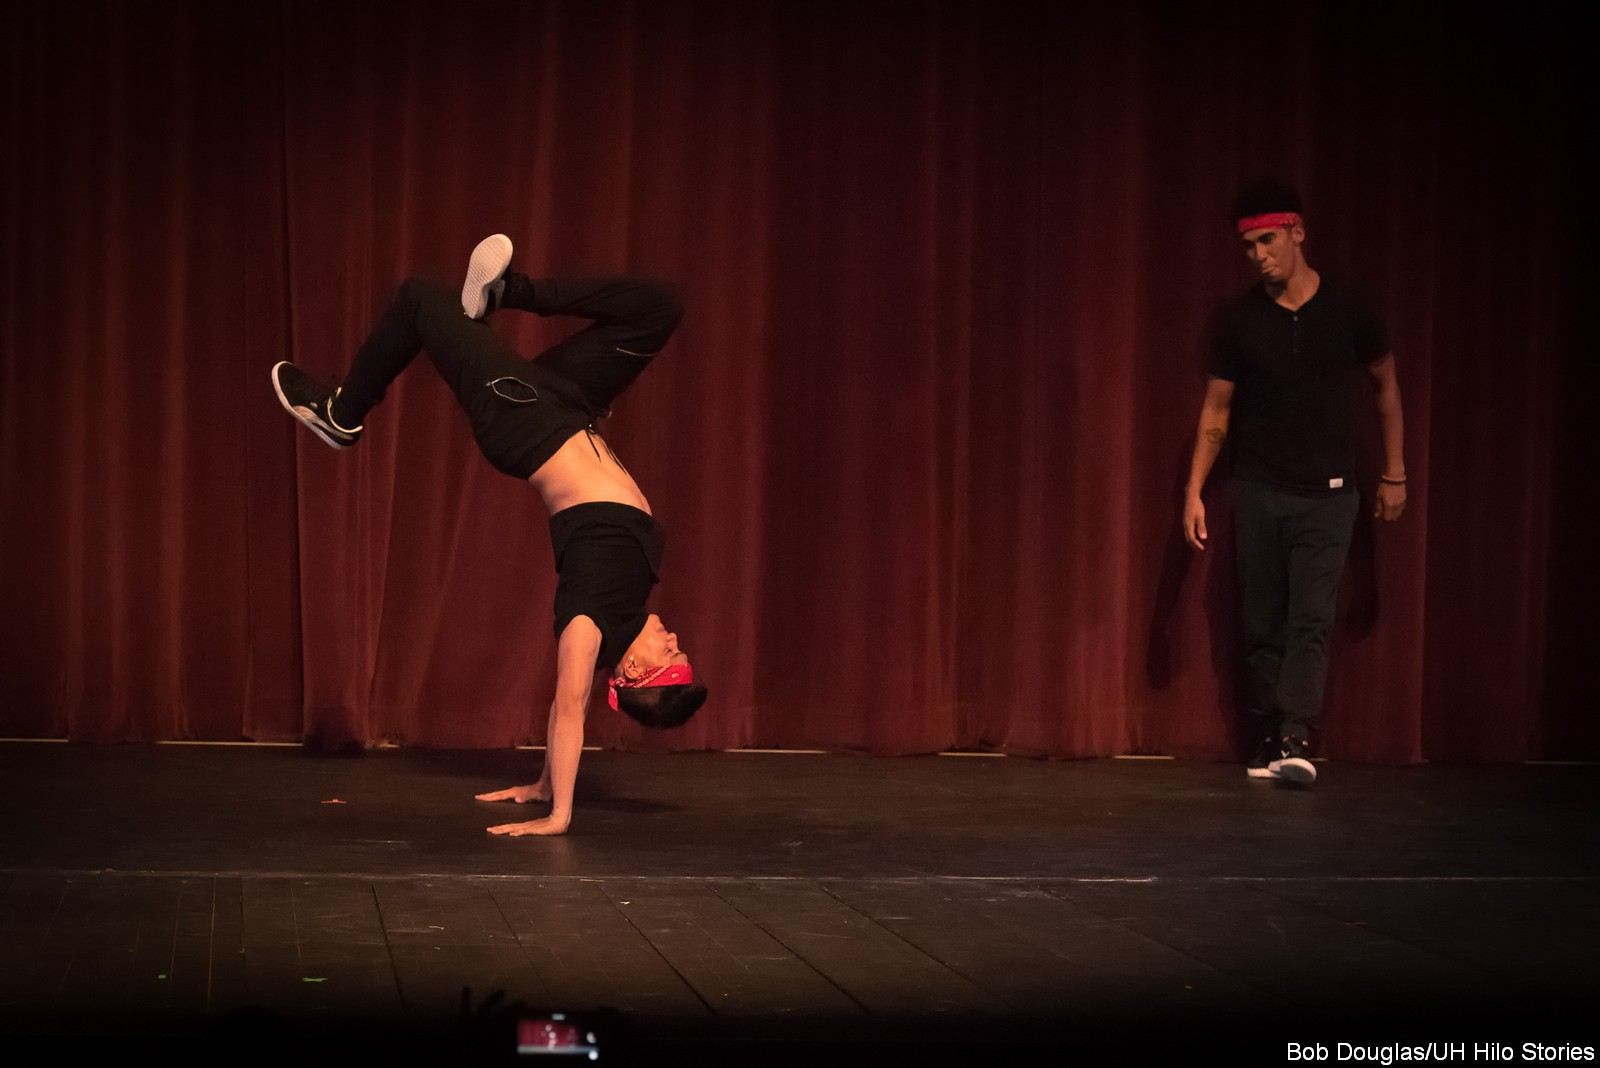 Dancer in modern black costume, doing handstand.